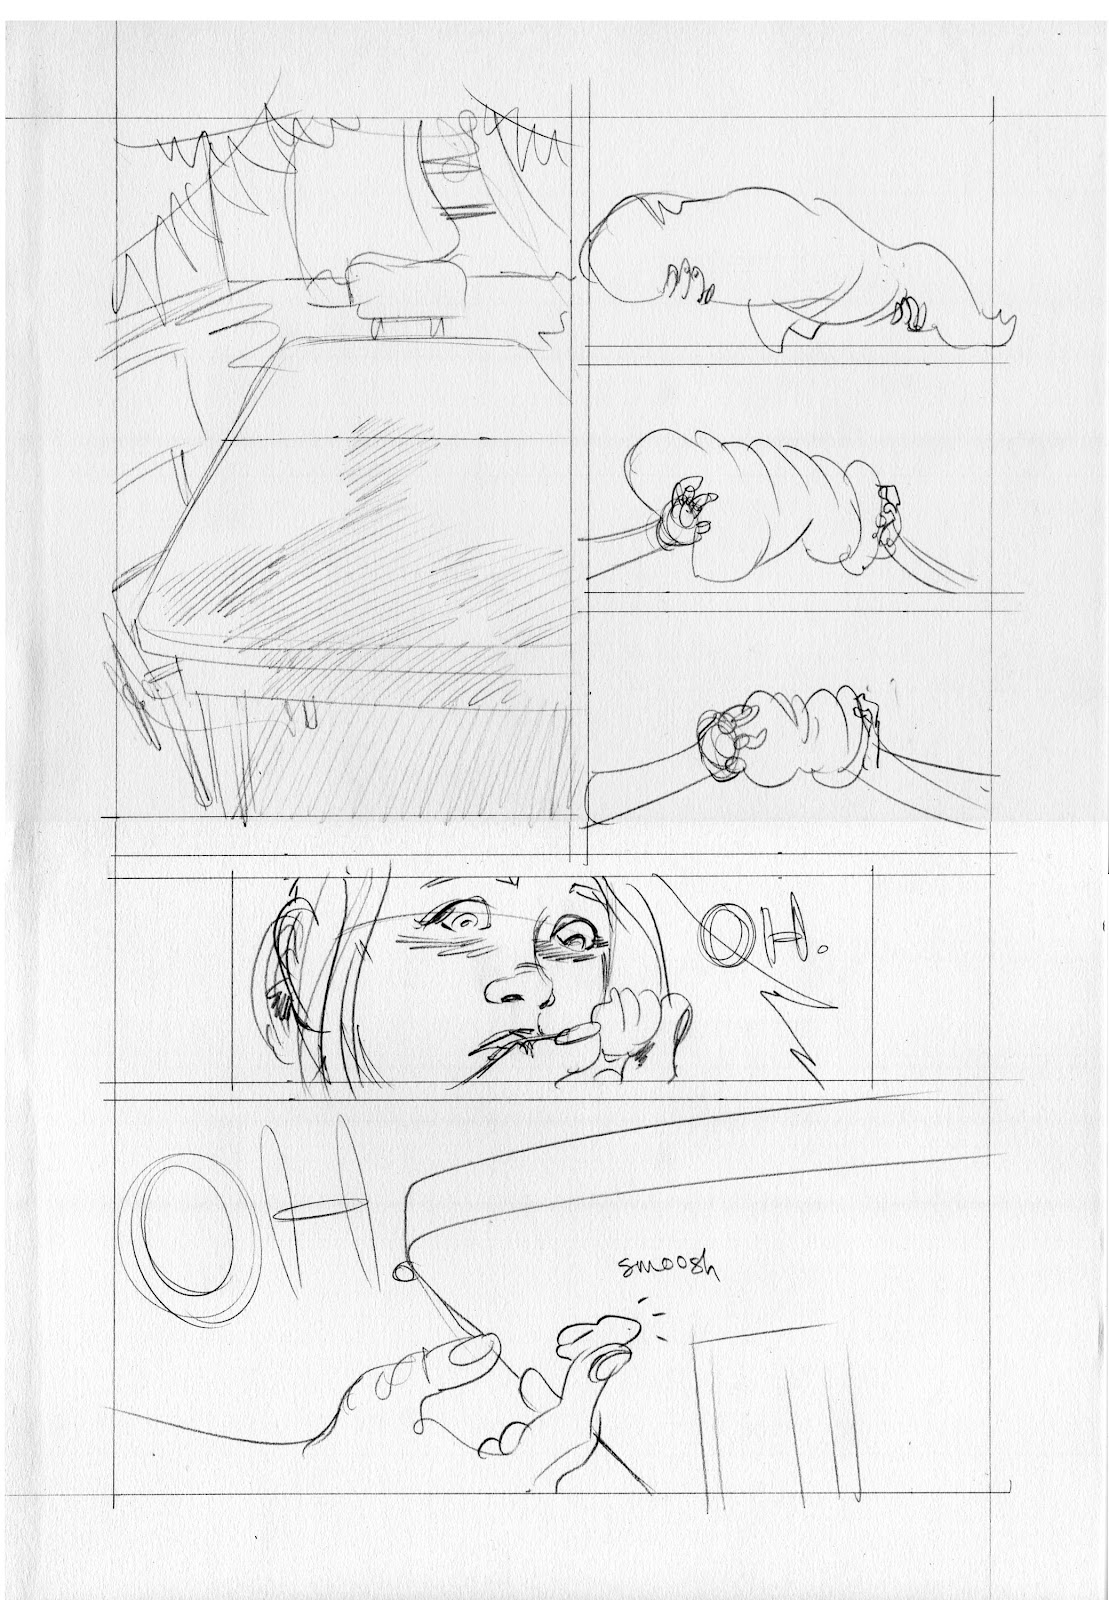 seemybrotherdance: Pencil pages galore on forthcoming books!